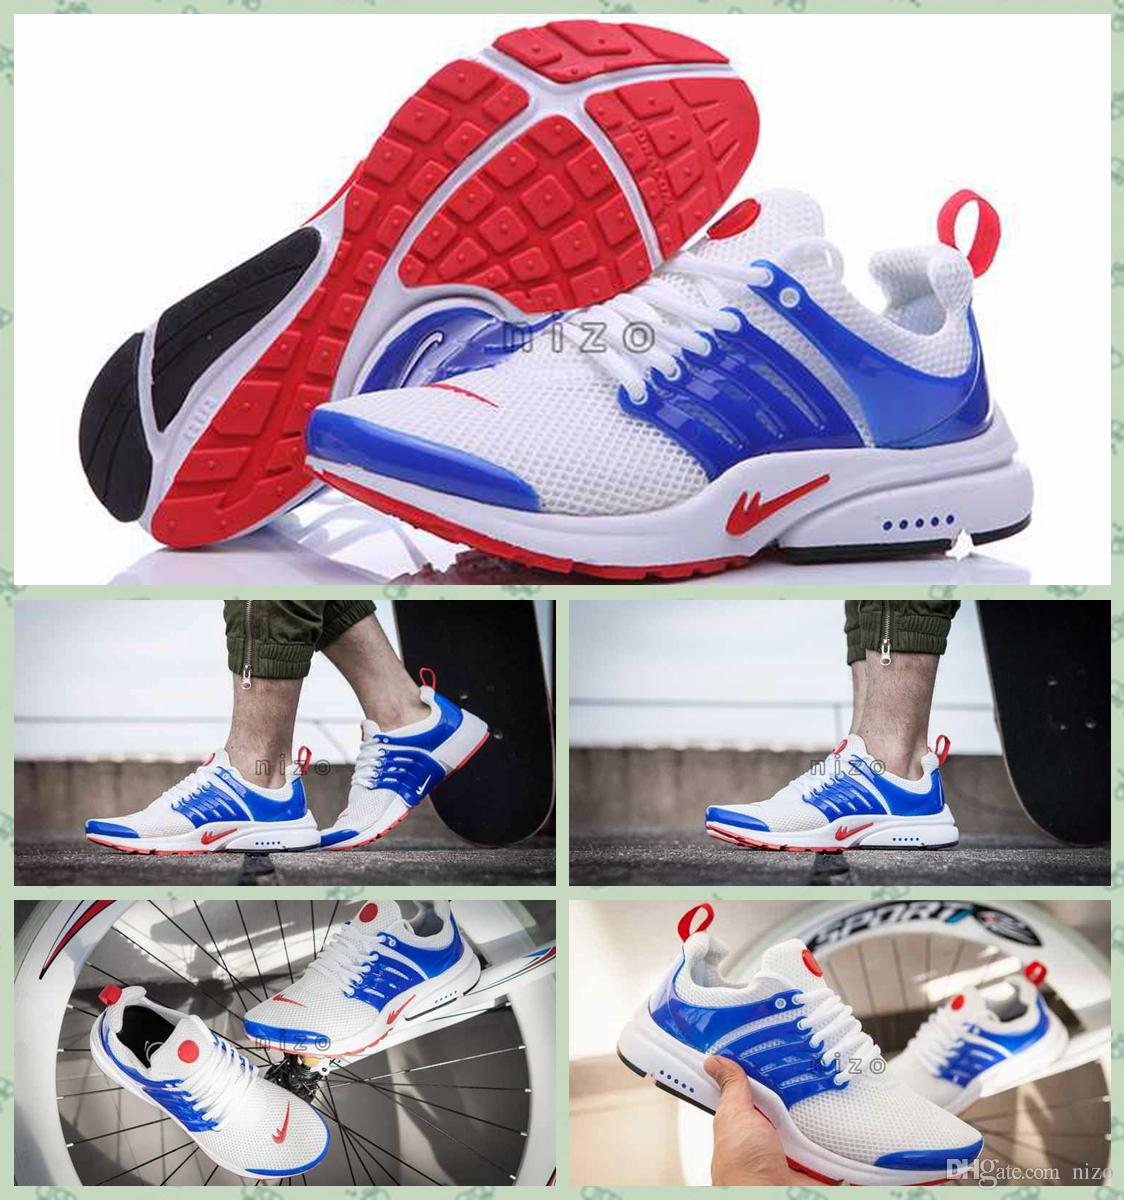 And Air Women Presto 2016 Olympic Flag American Newest Gpx Usa Shoes Ibfm6gYy7v